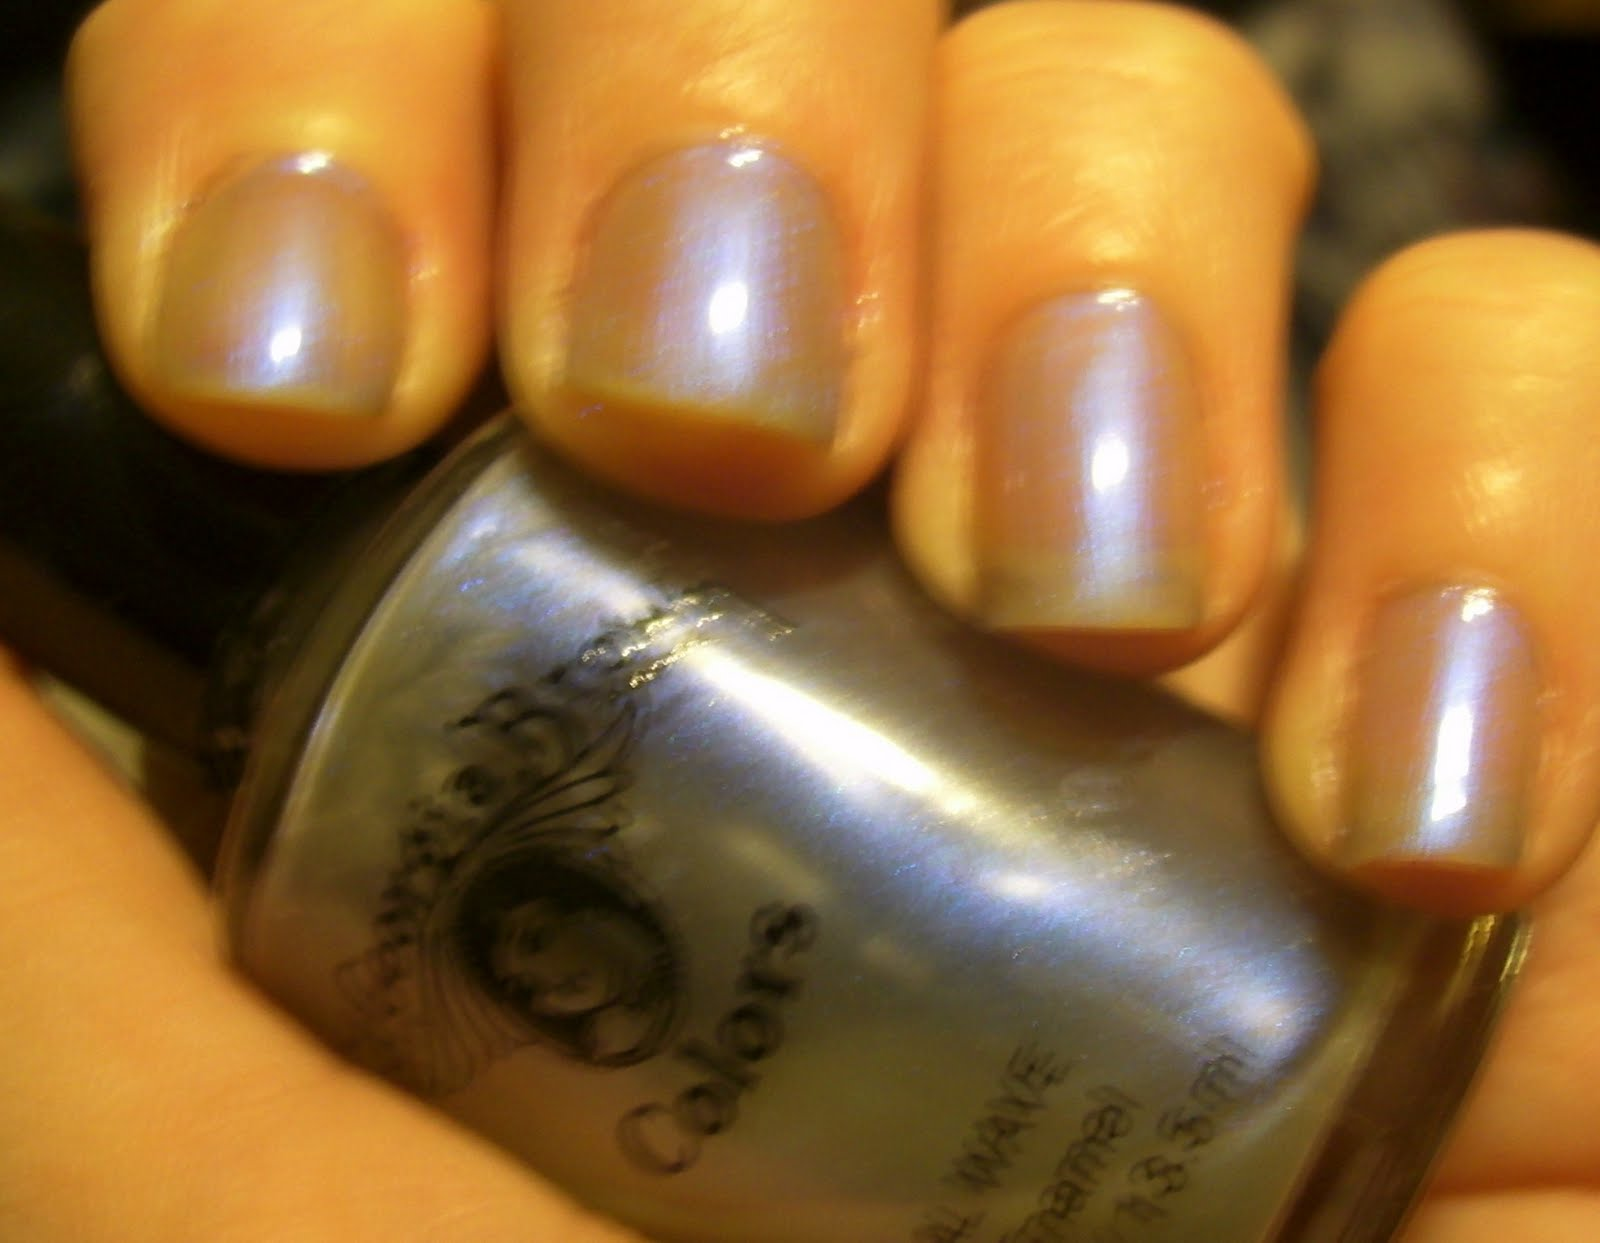 Kitty Luvs Color!: Sweet georgia Brown Nail Polish, no name?